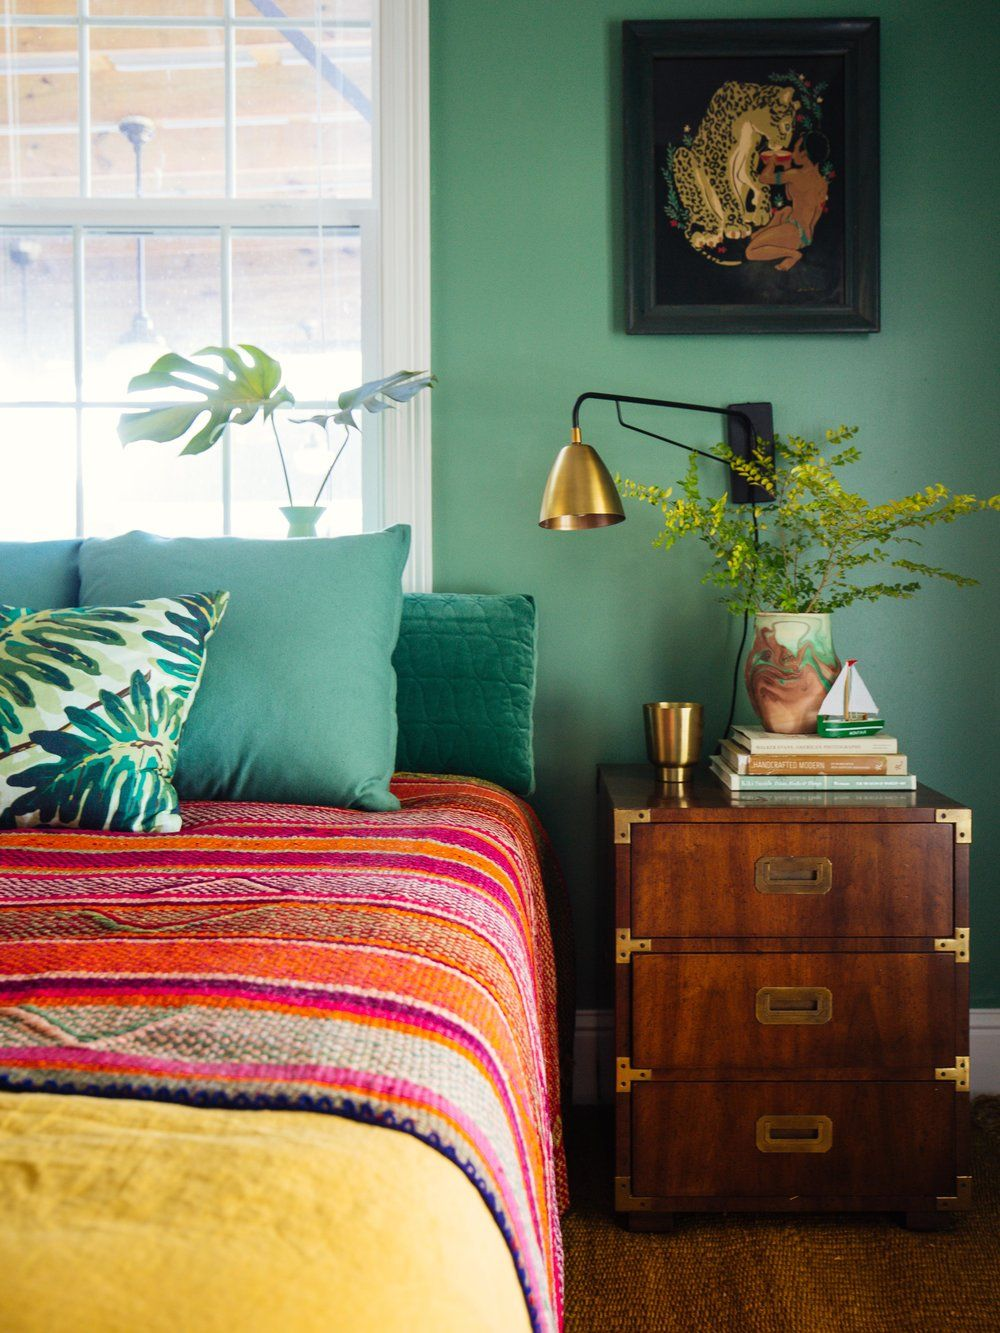 Bedroom colors and designs - Eclectic Bedroom With Tropical Colors